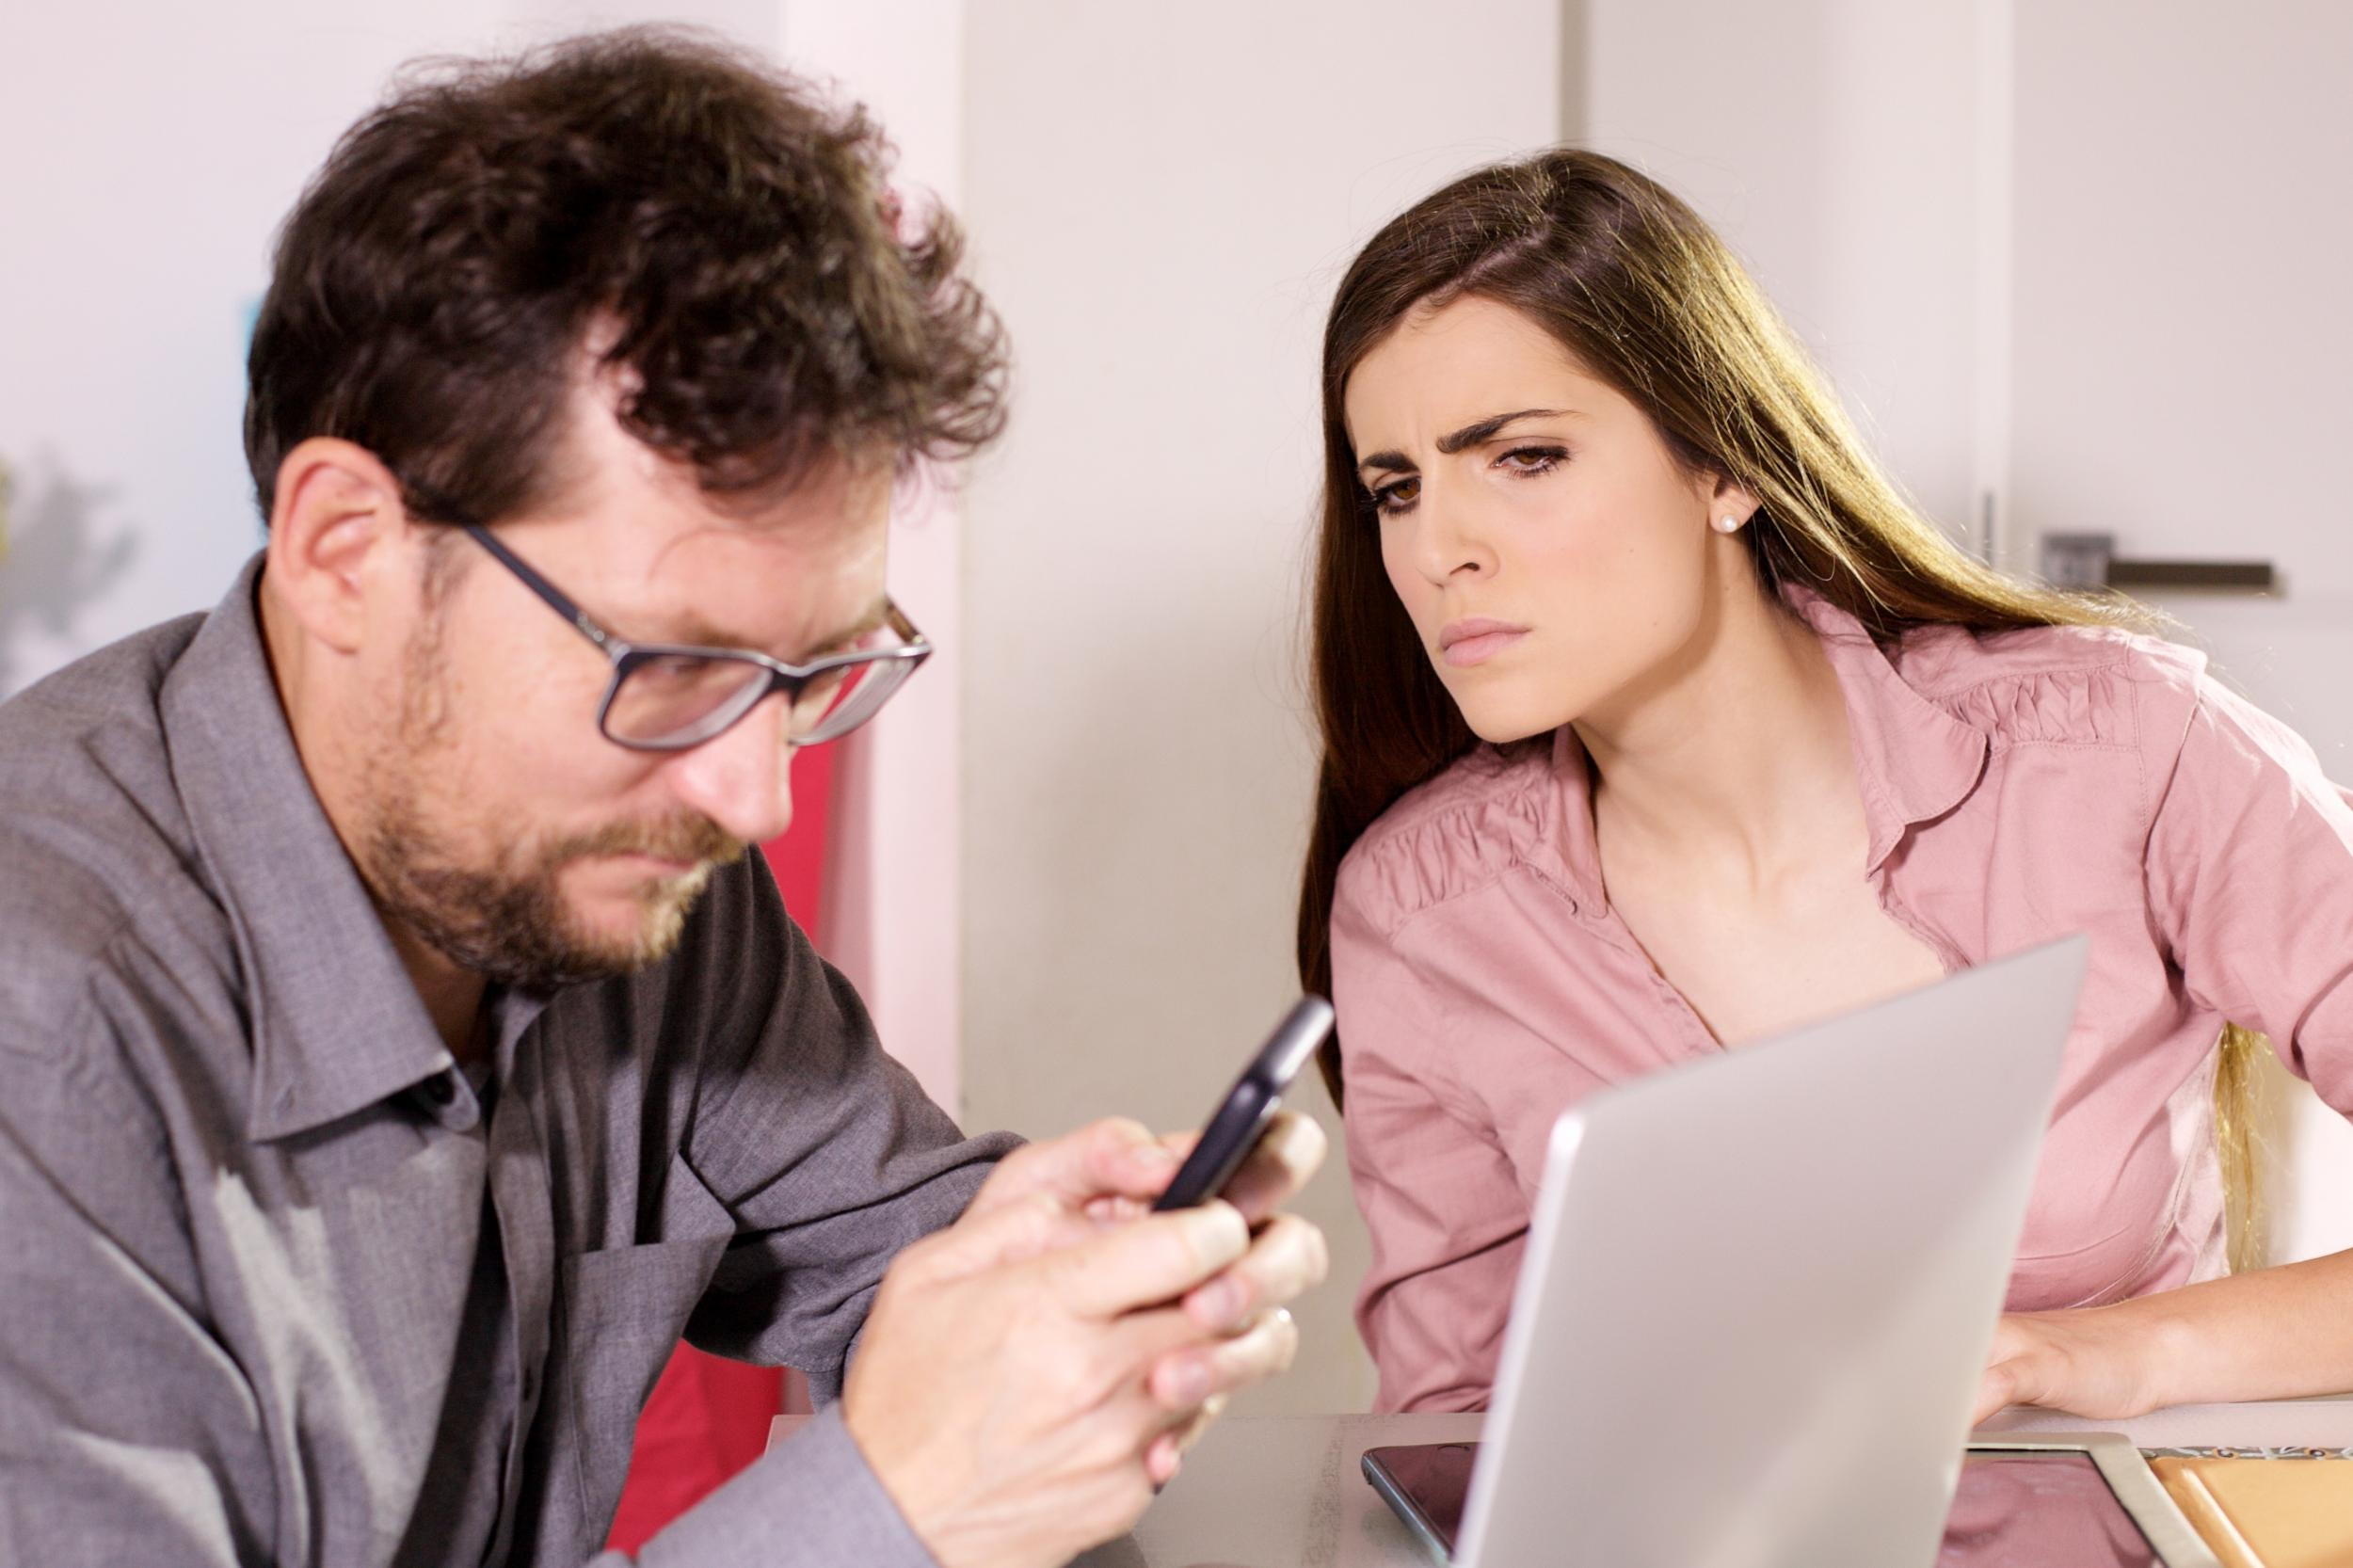 The types of people most likely to cheat in relationships